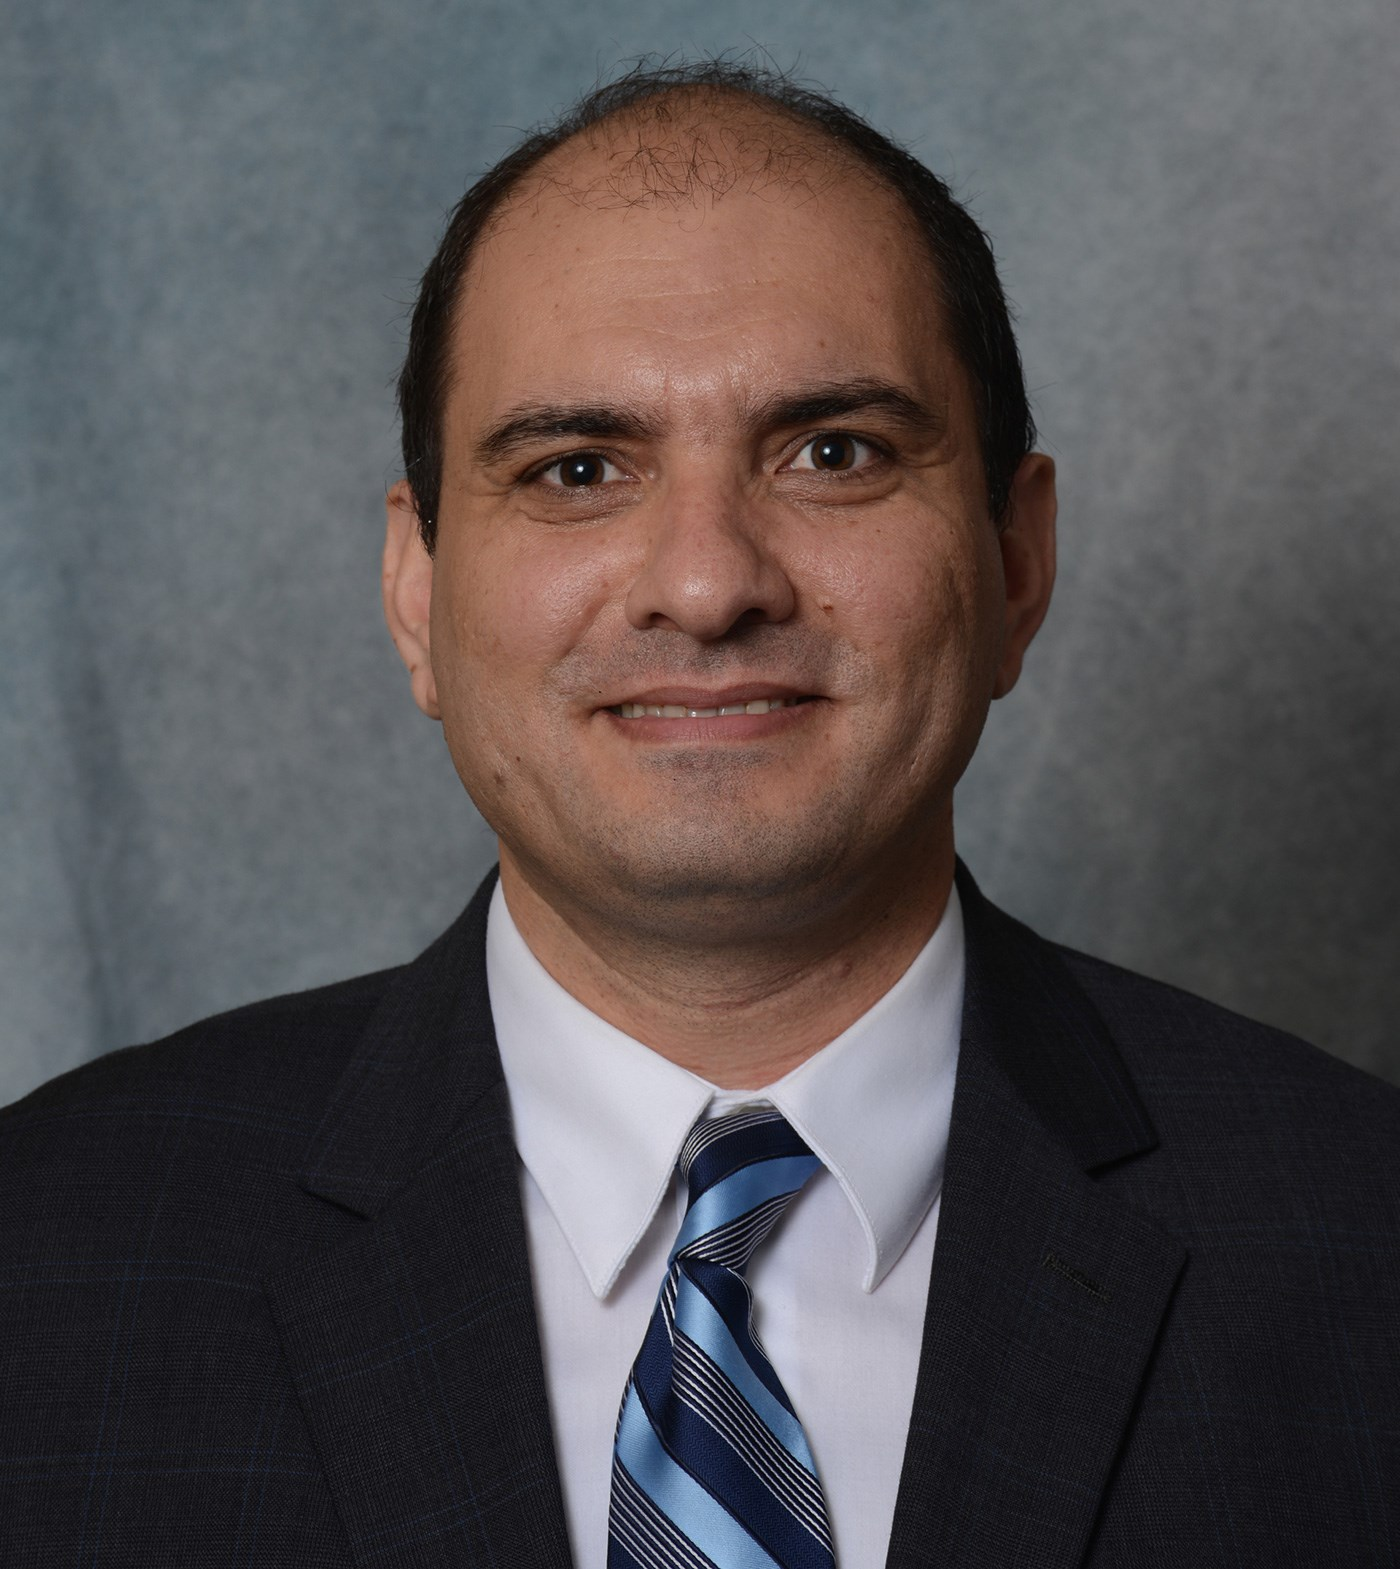 Murat Inalpolat, Ph.D. is an Assistant Professor in the Department of Mechanical Engineering at the University of Massachusetts Lowell.